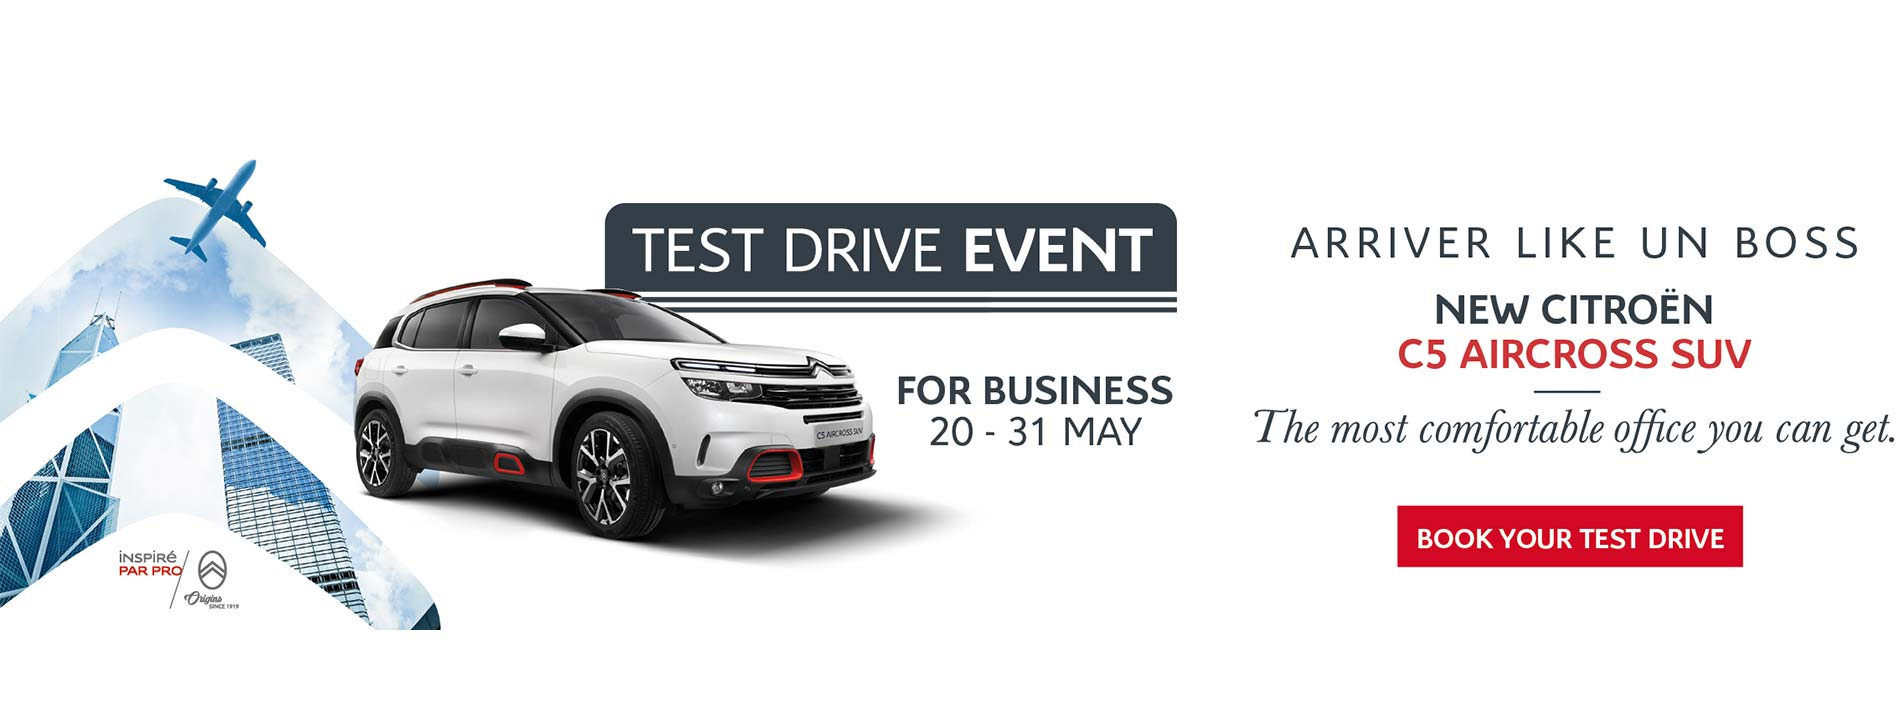 citroen-c5-aircross-business-test-drive-event-aldershot-m-sli